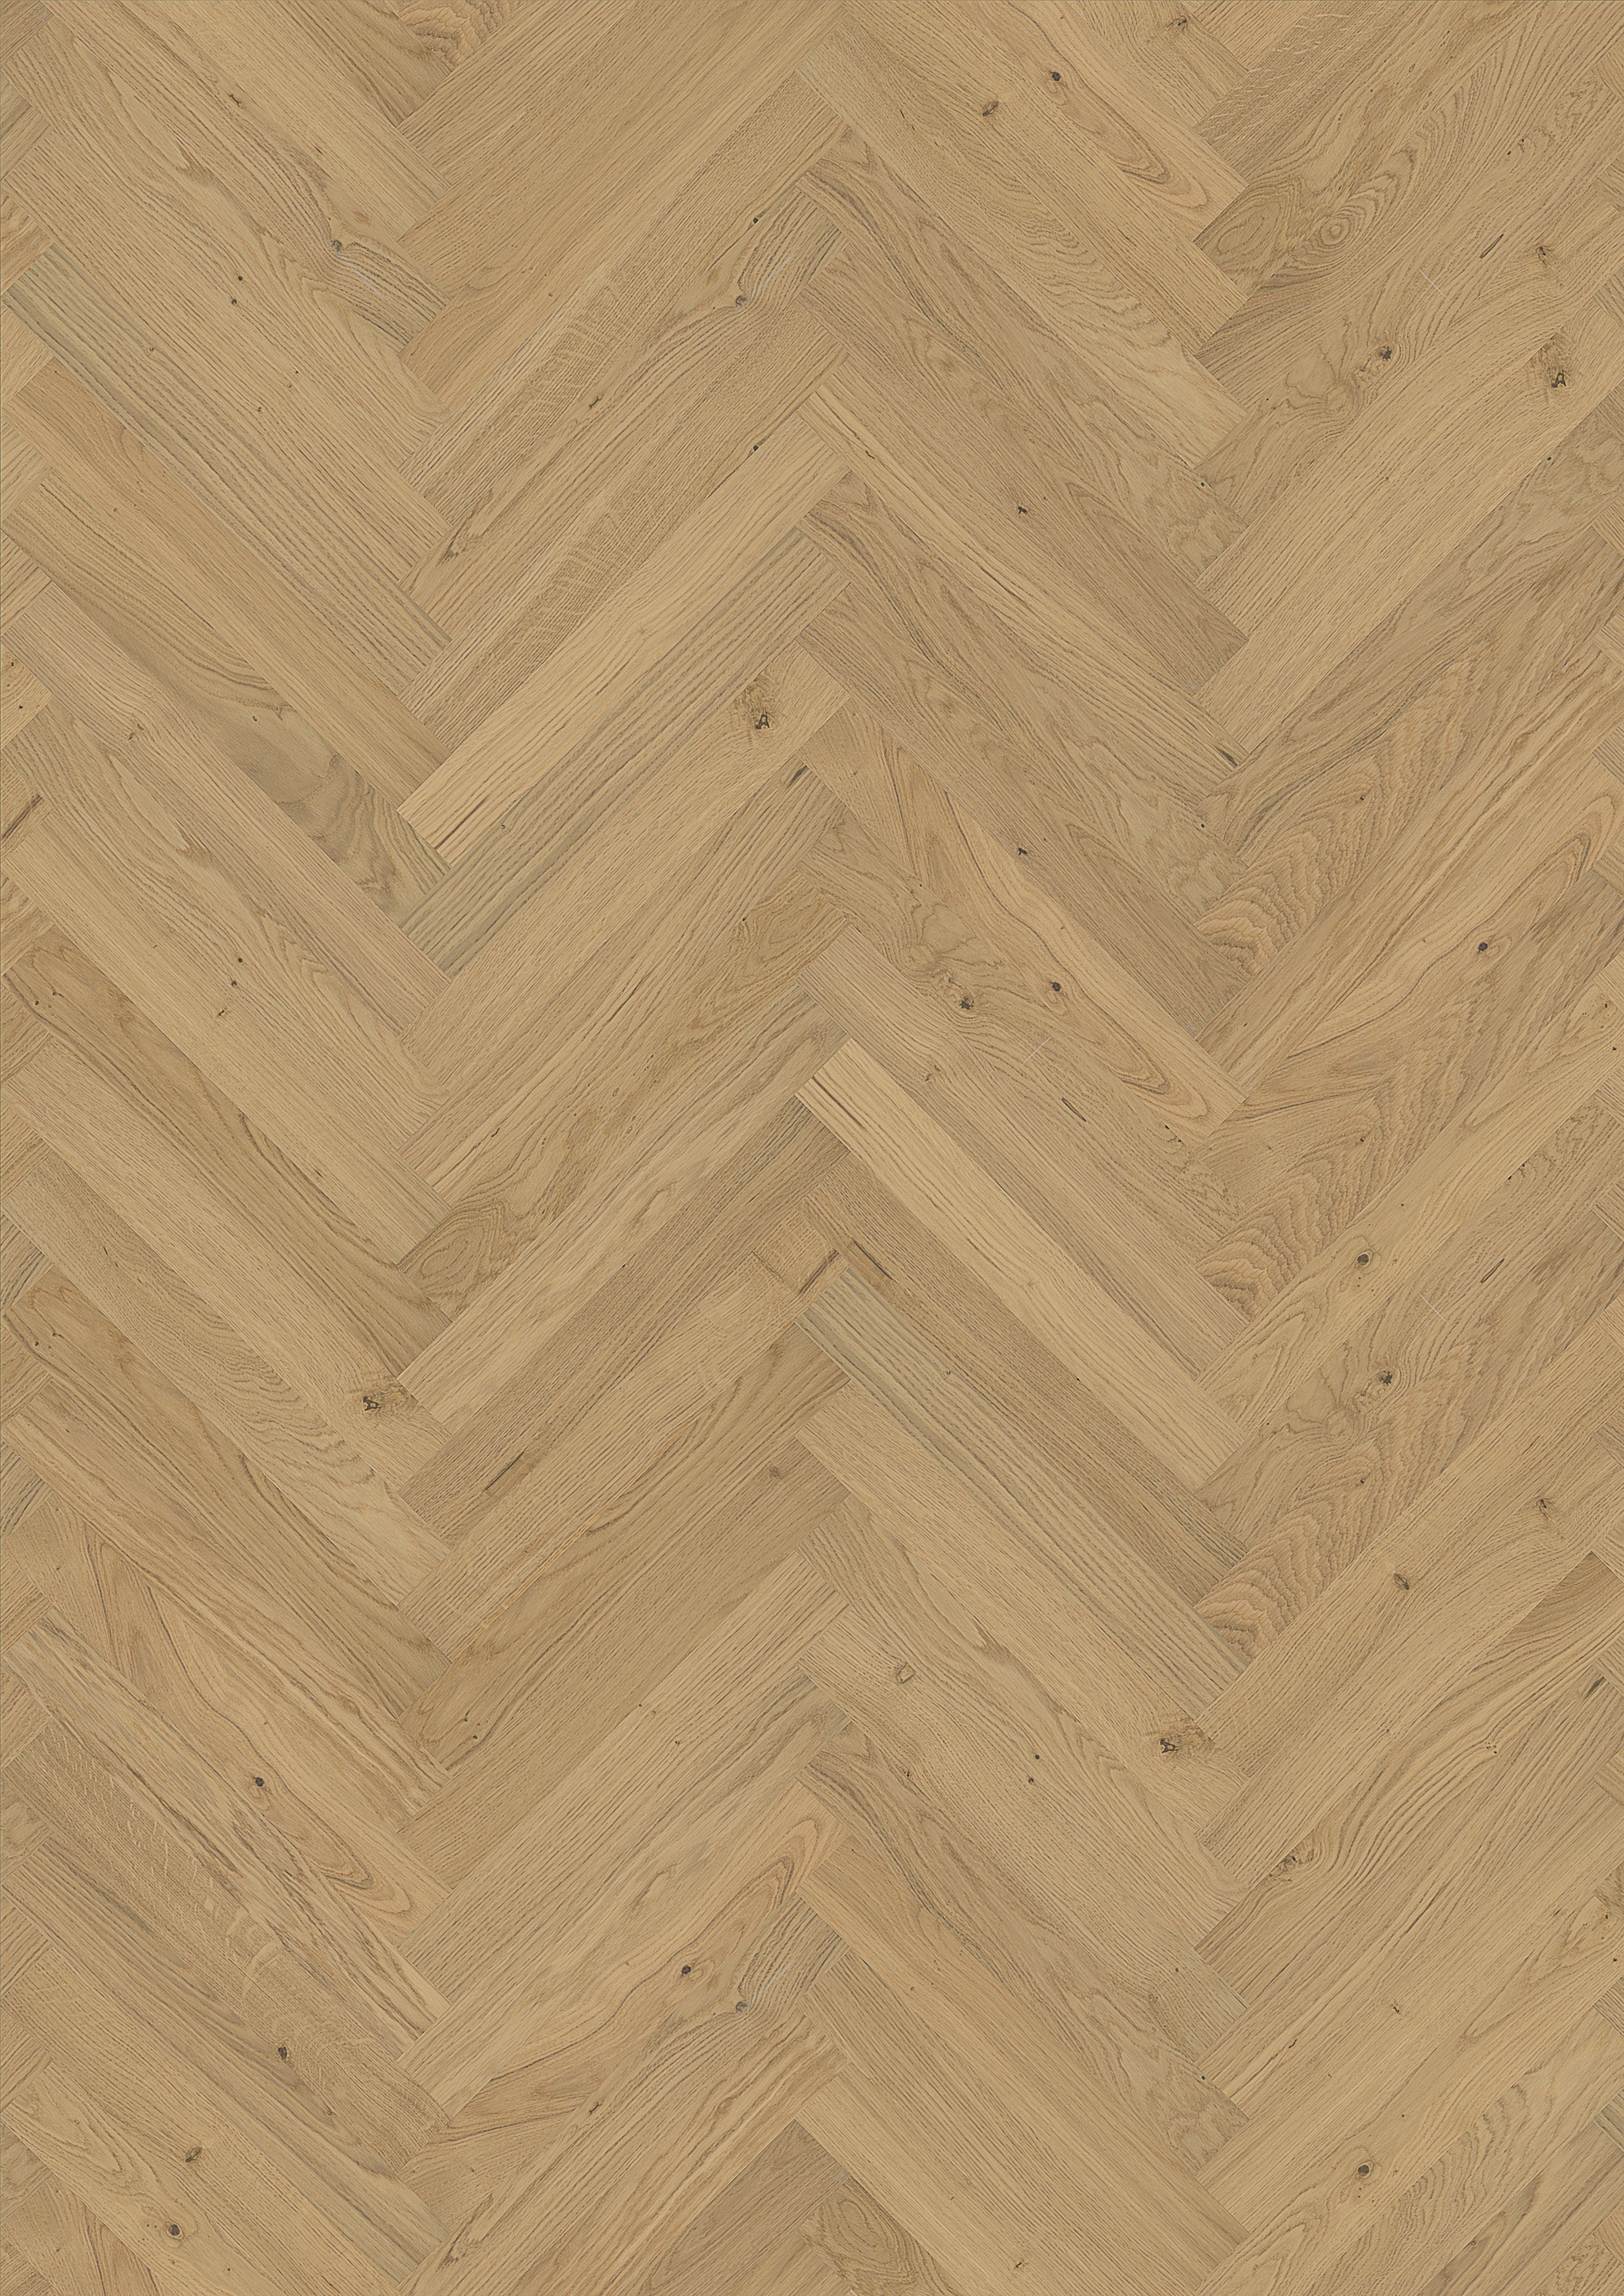 Pin By Felipe Miller Jr On Felipe Wood Floor Texture Parquet